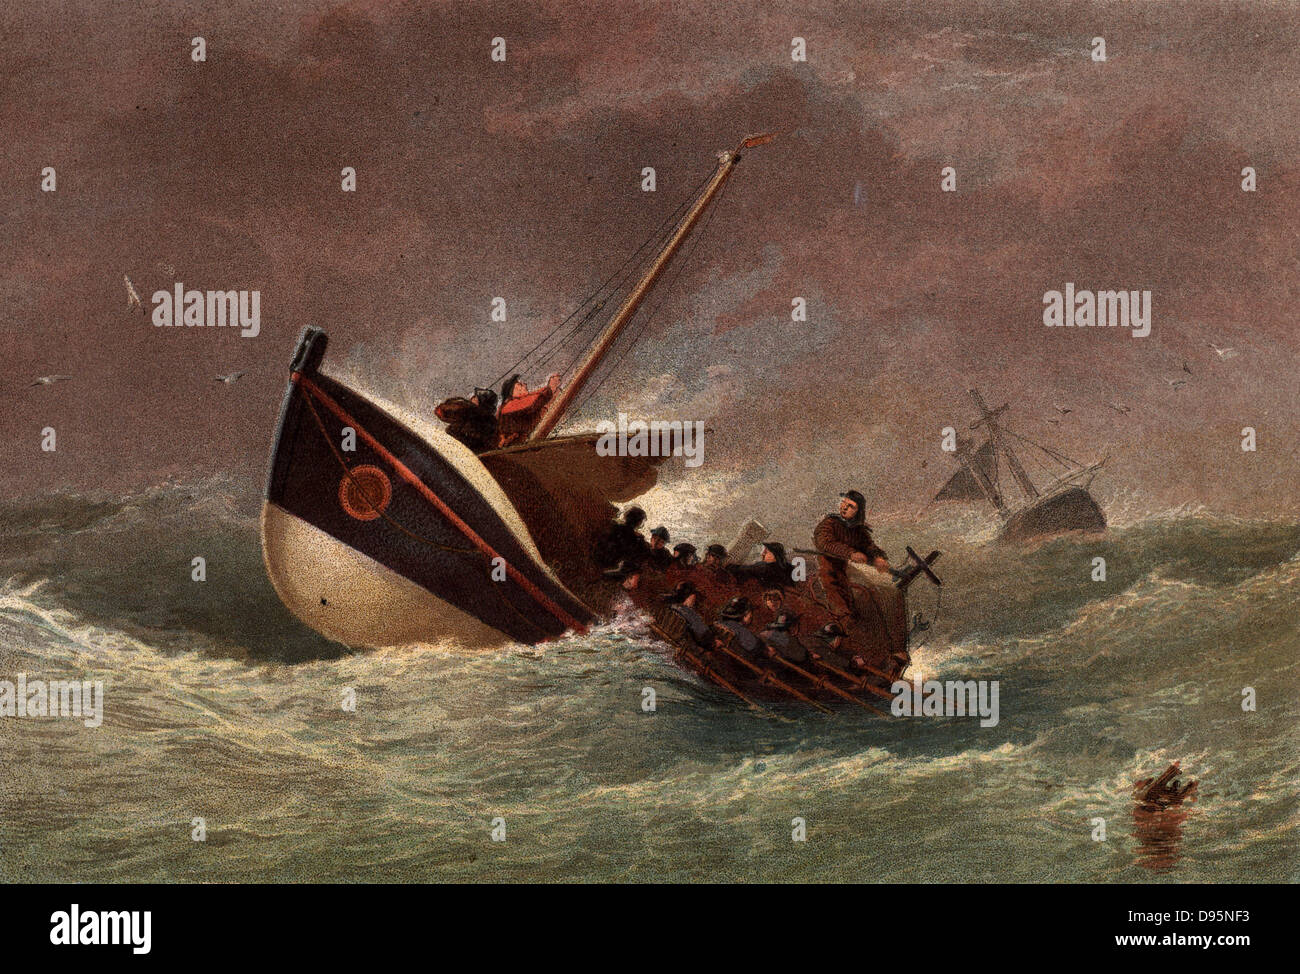 Lifeboat in the livery of the Royal National Lifeboat Institution in heavy seas returning from a rescue mission. - Stock Image